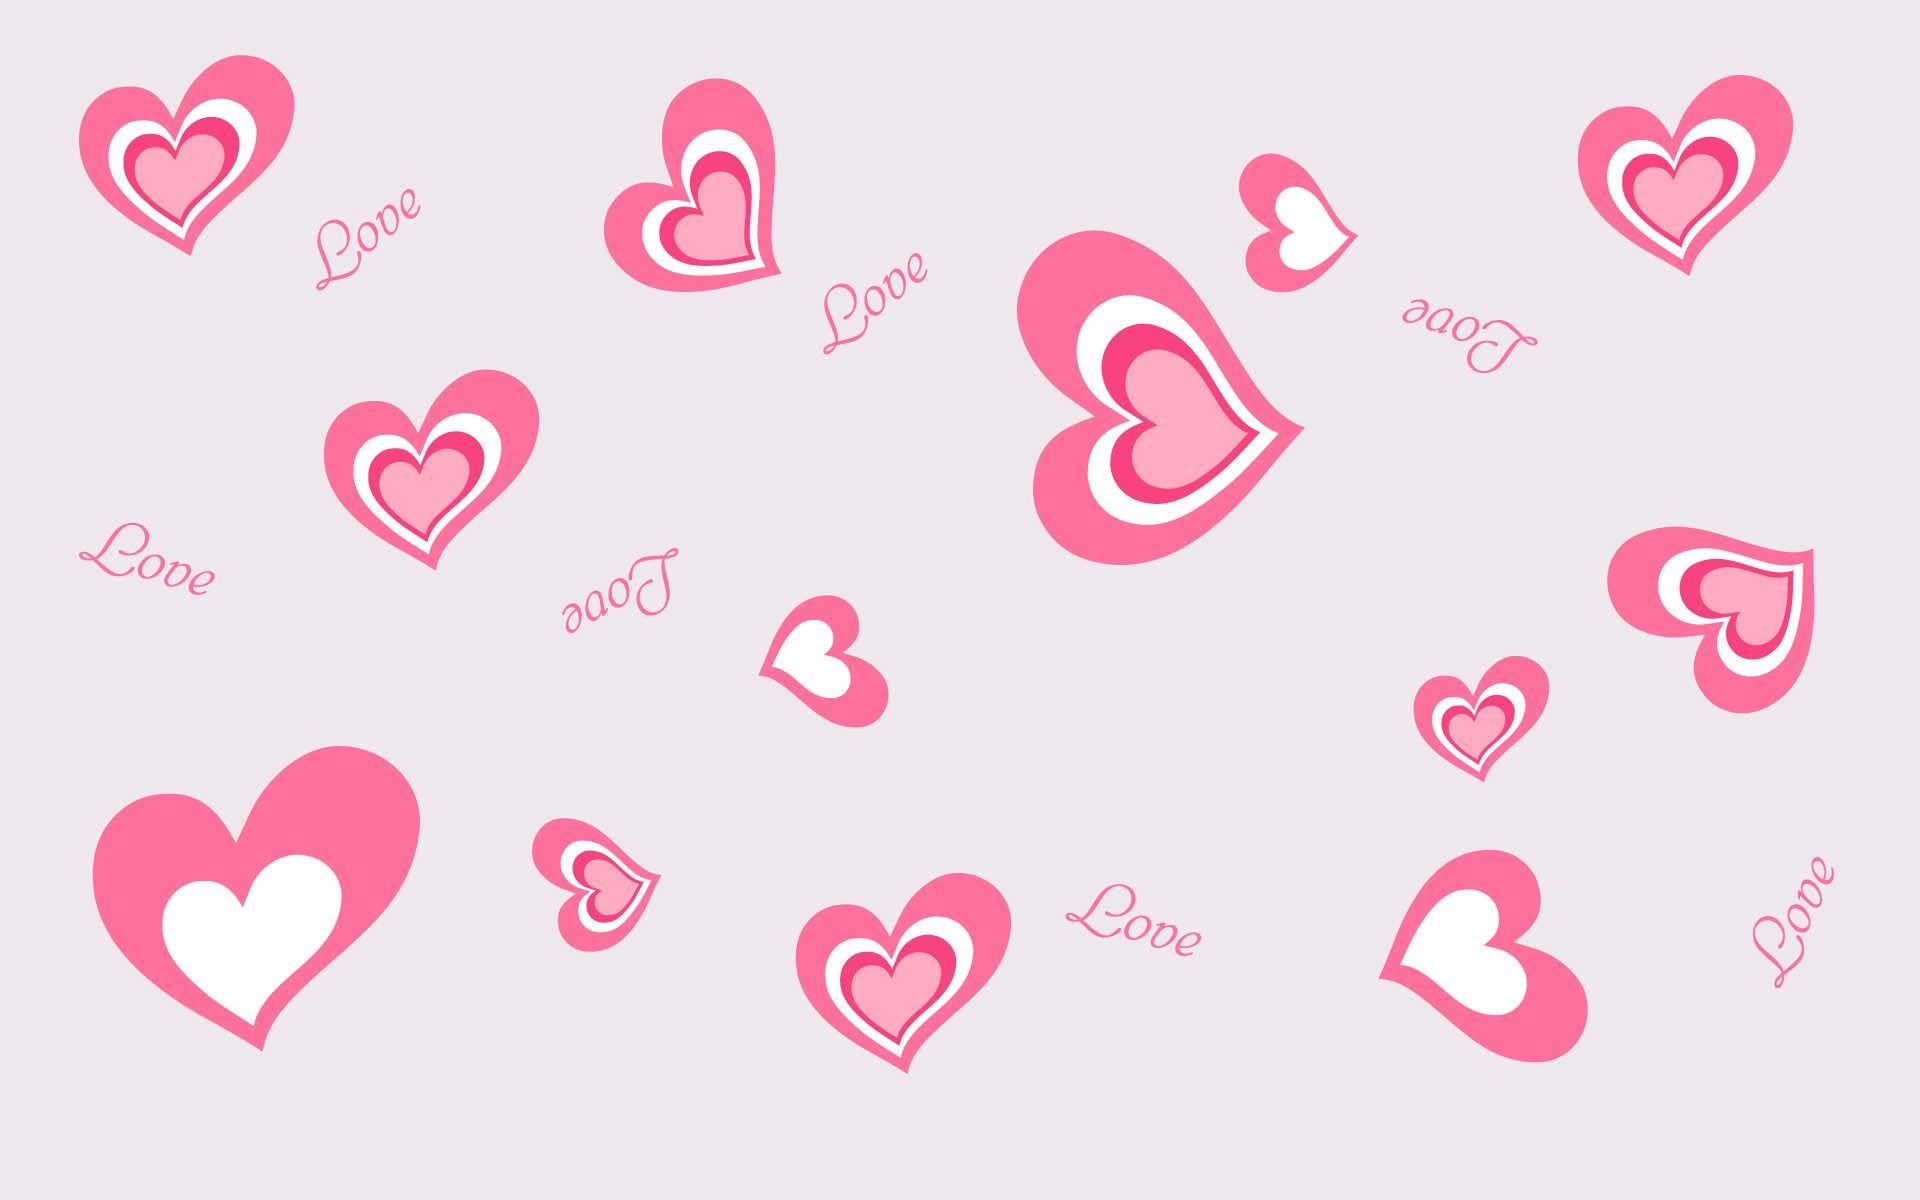 1920x1200 ... Cute Heart Tumblr Wallpapers 1080p with High Definition Wallpaper . ...